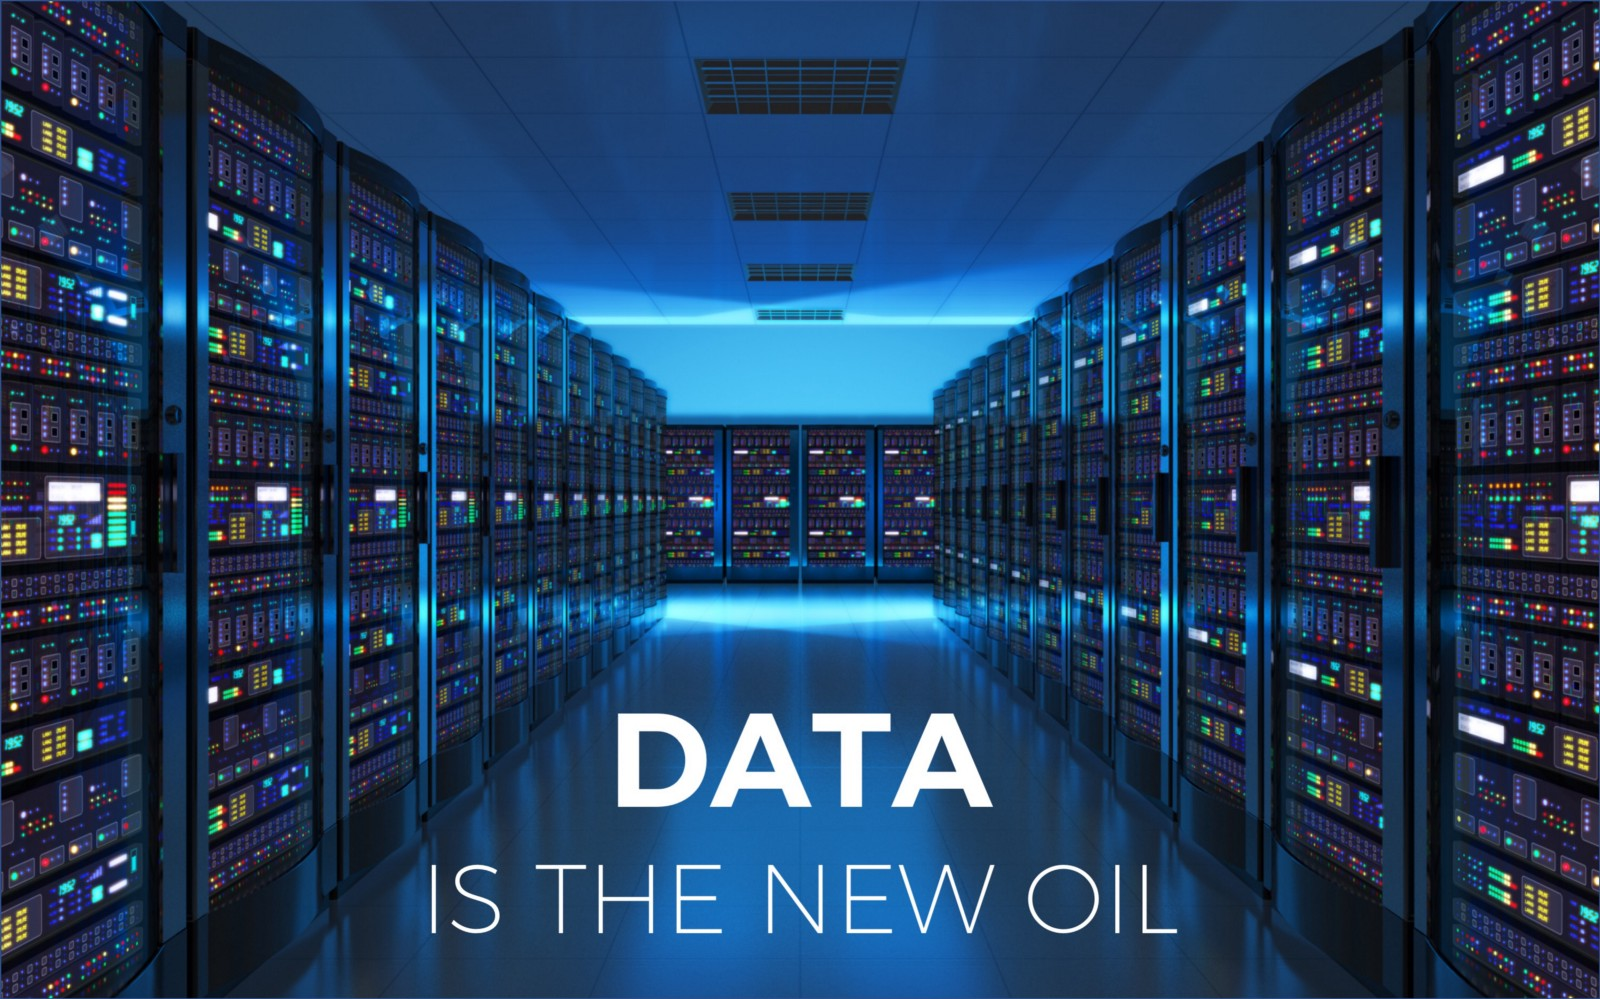 data is the new oil - Salesflare sales deck